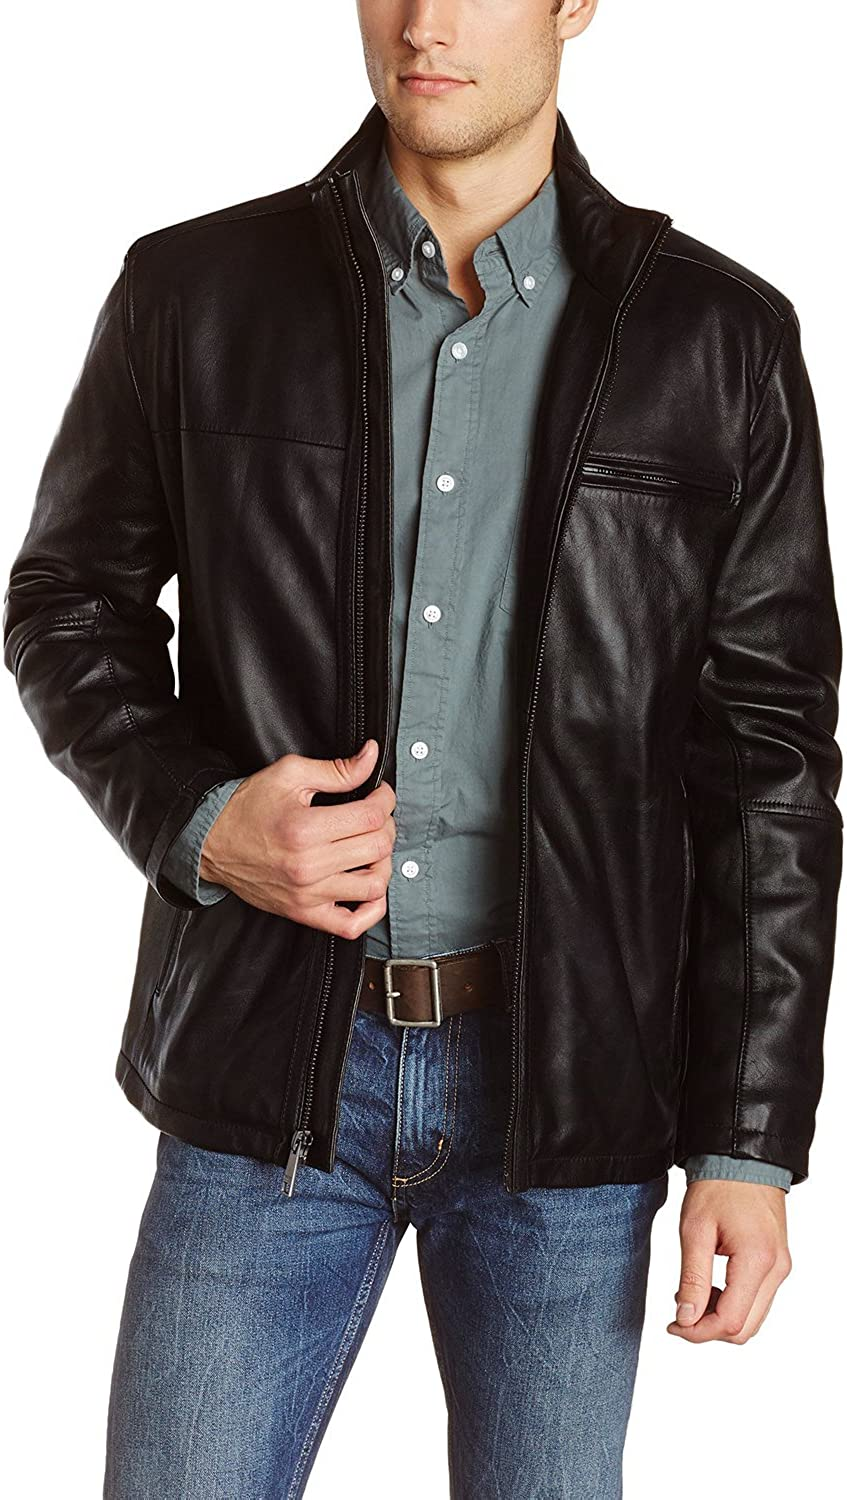 1502848 Black, Trench Coat Laverapelle Mens Genuine Lambskin Leather Coat